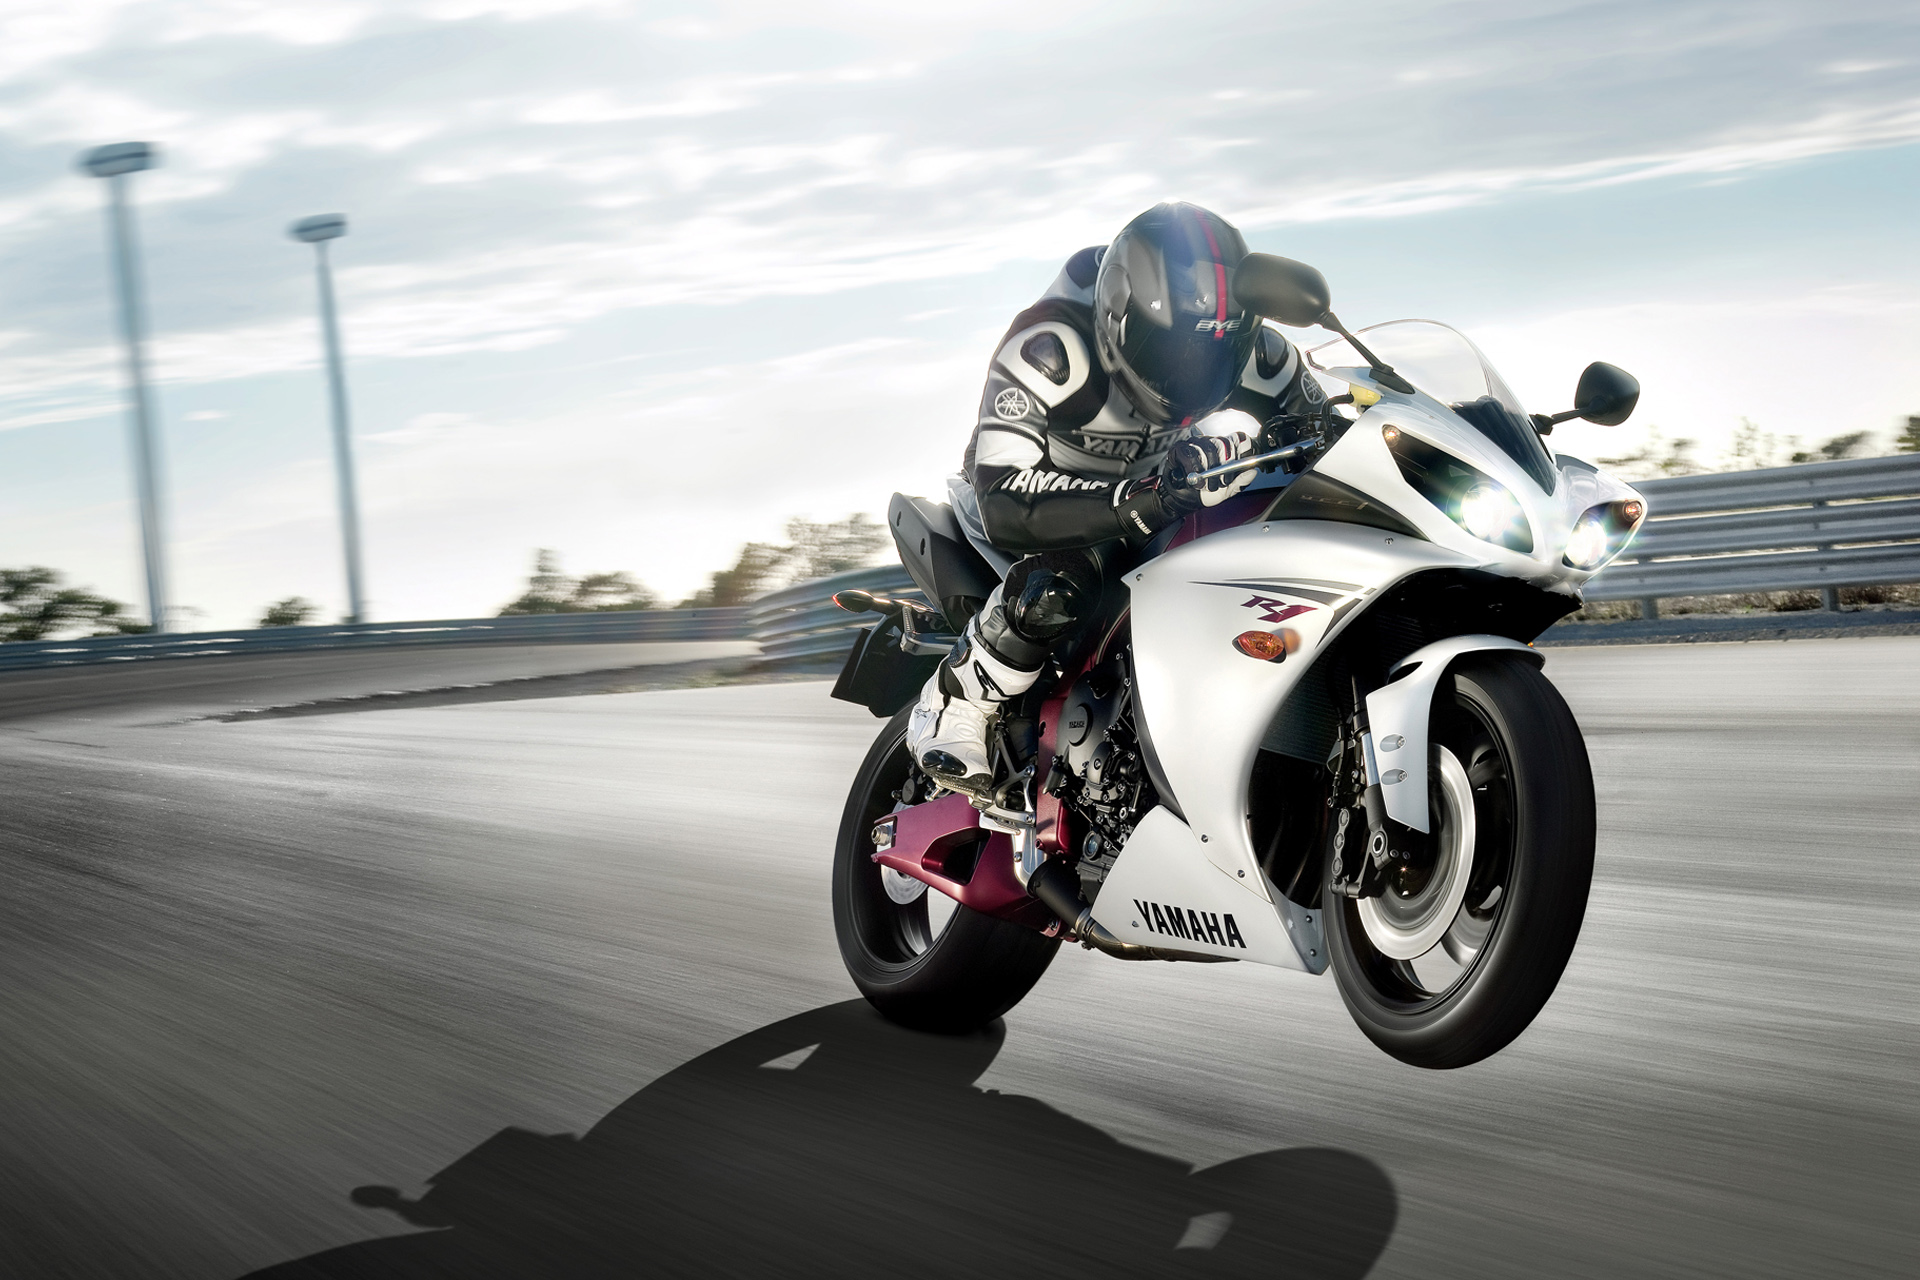 Photo of yamaha yzf r1 63596 image size 1920 x 1280 upload date